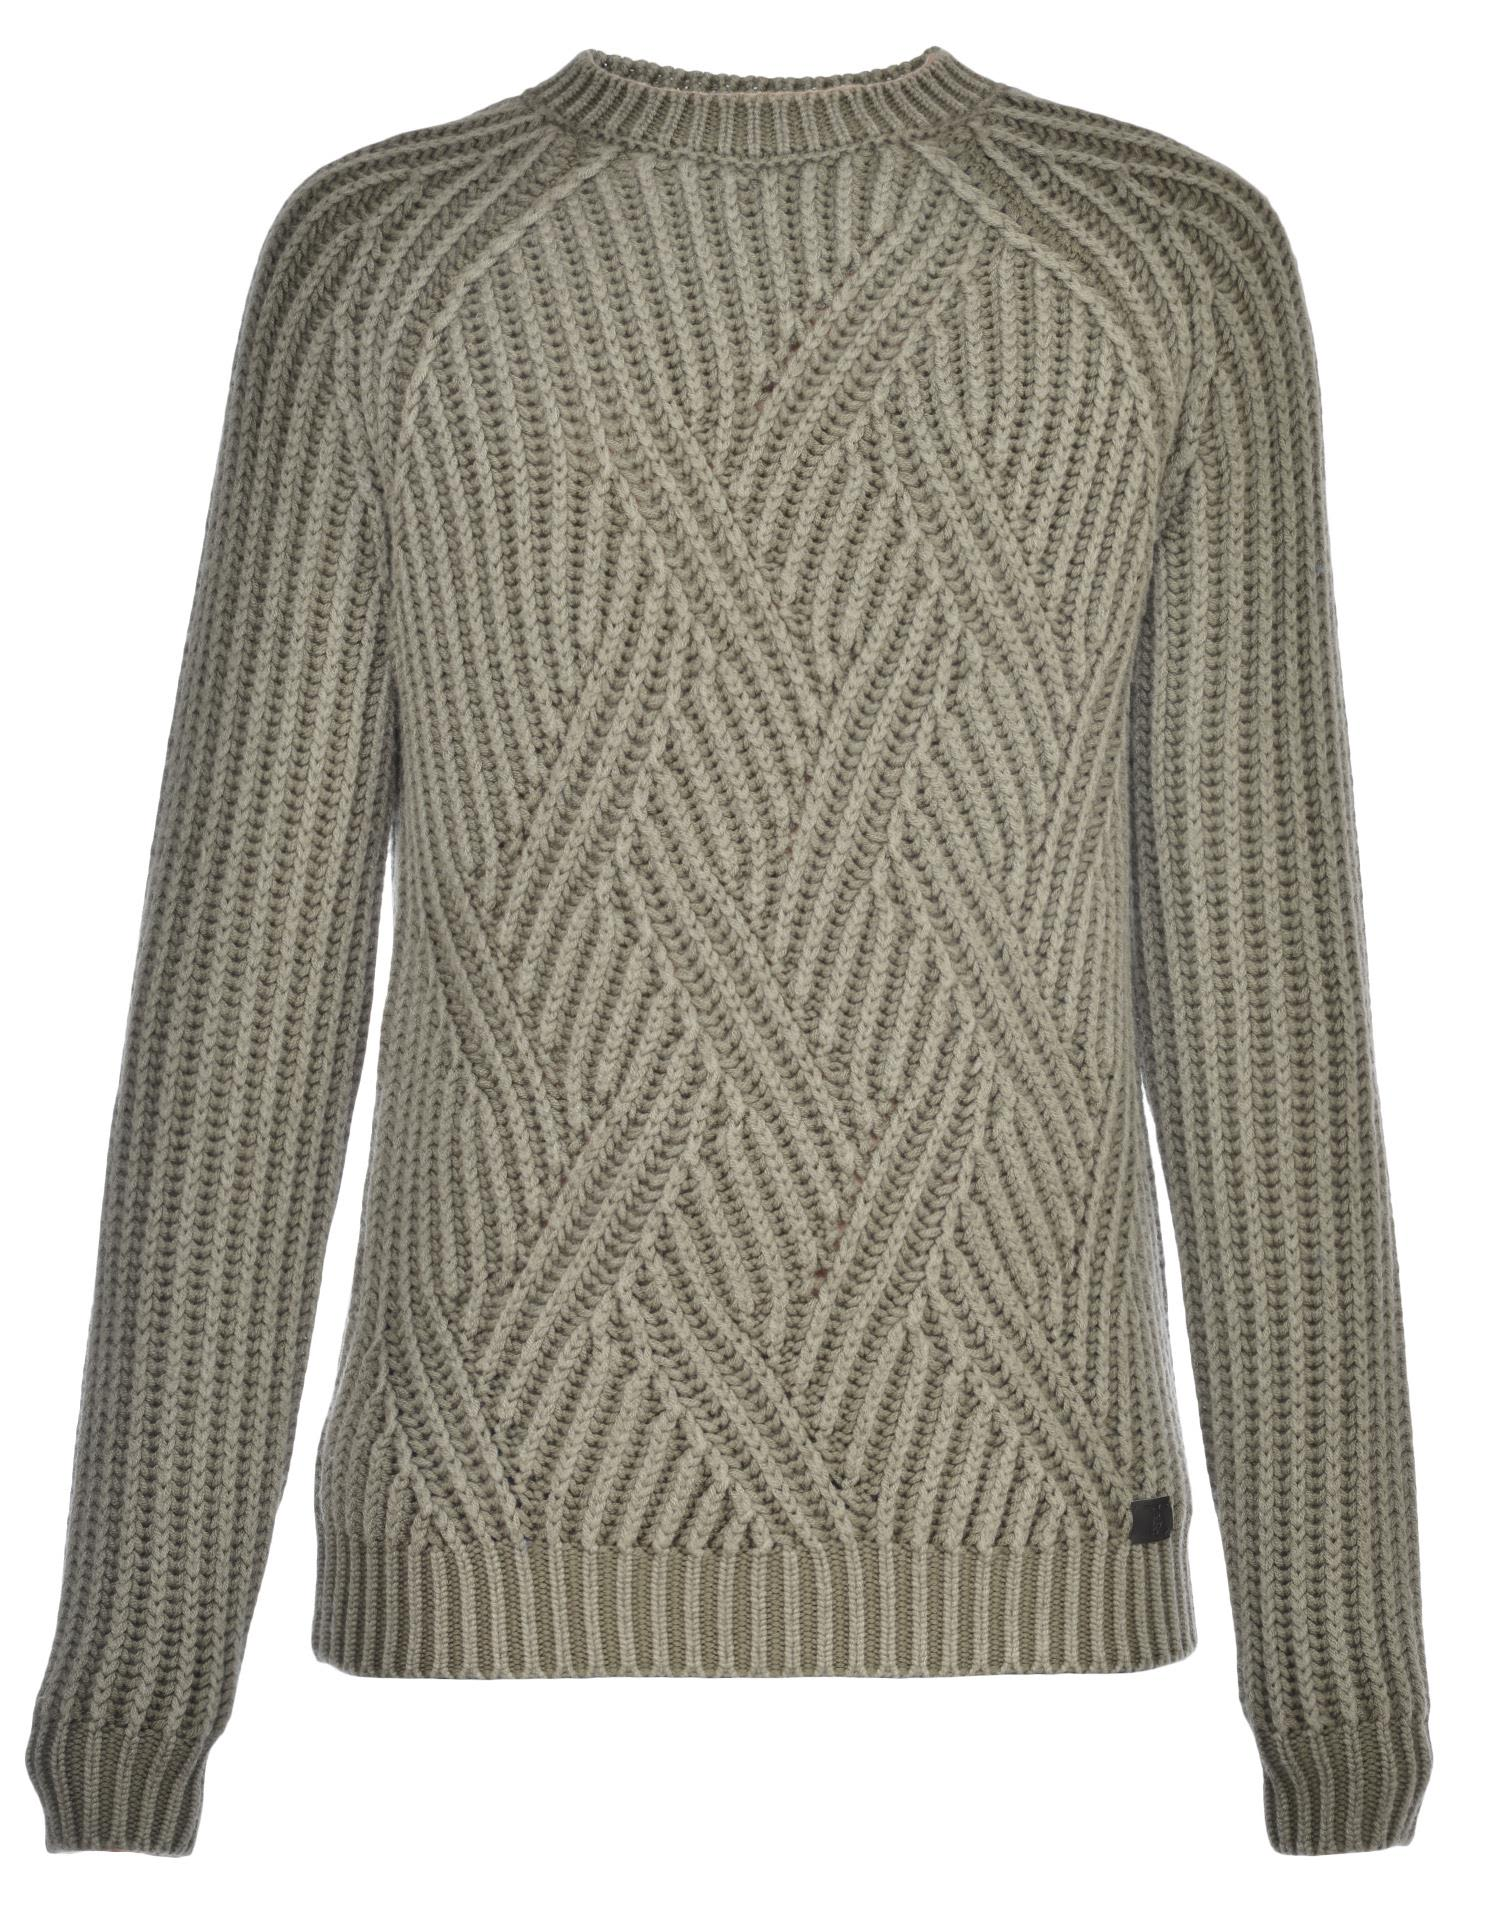 Tods Wool Sweater